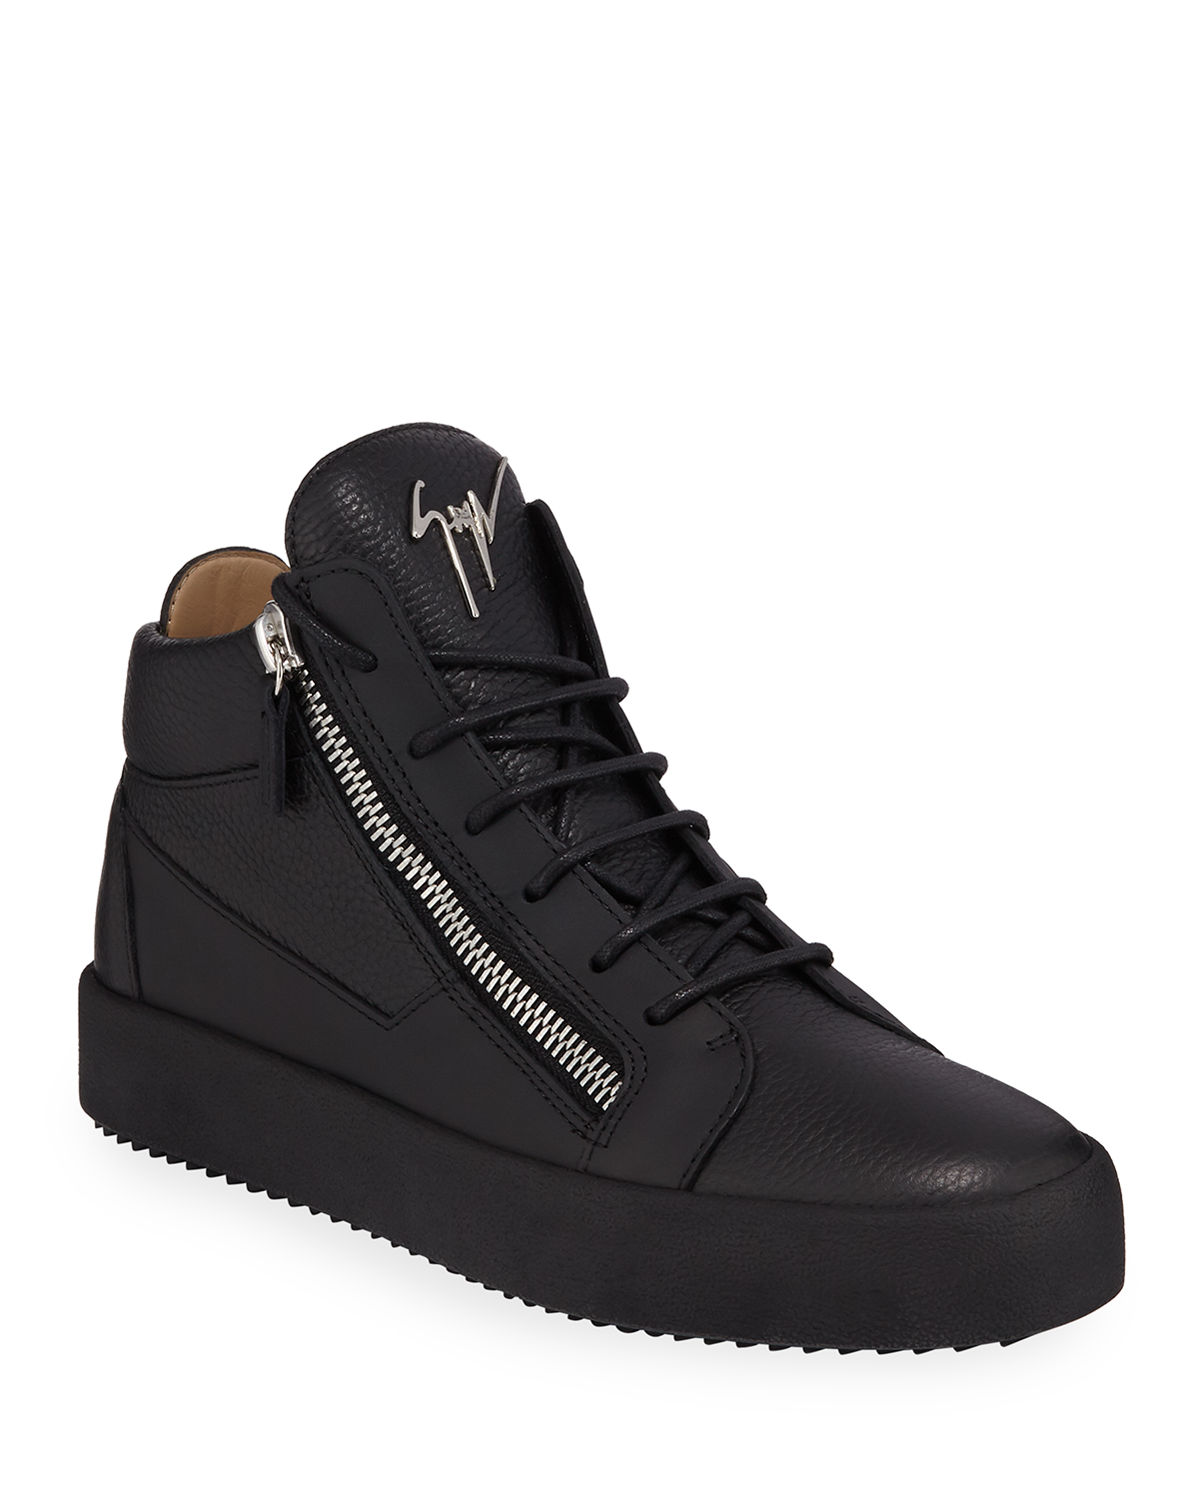 Giuseppe Zanotti Men s Textured Leather Mid-Top Sneakers  8eb06b9a9541b